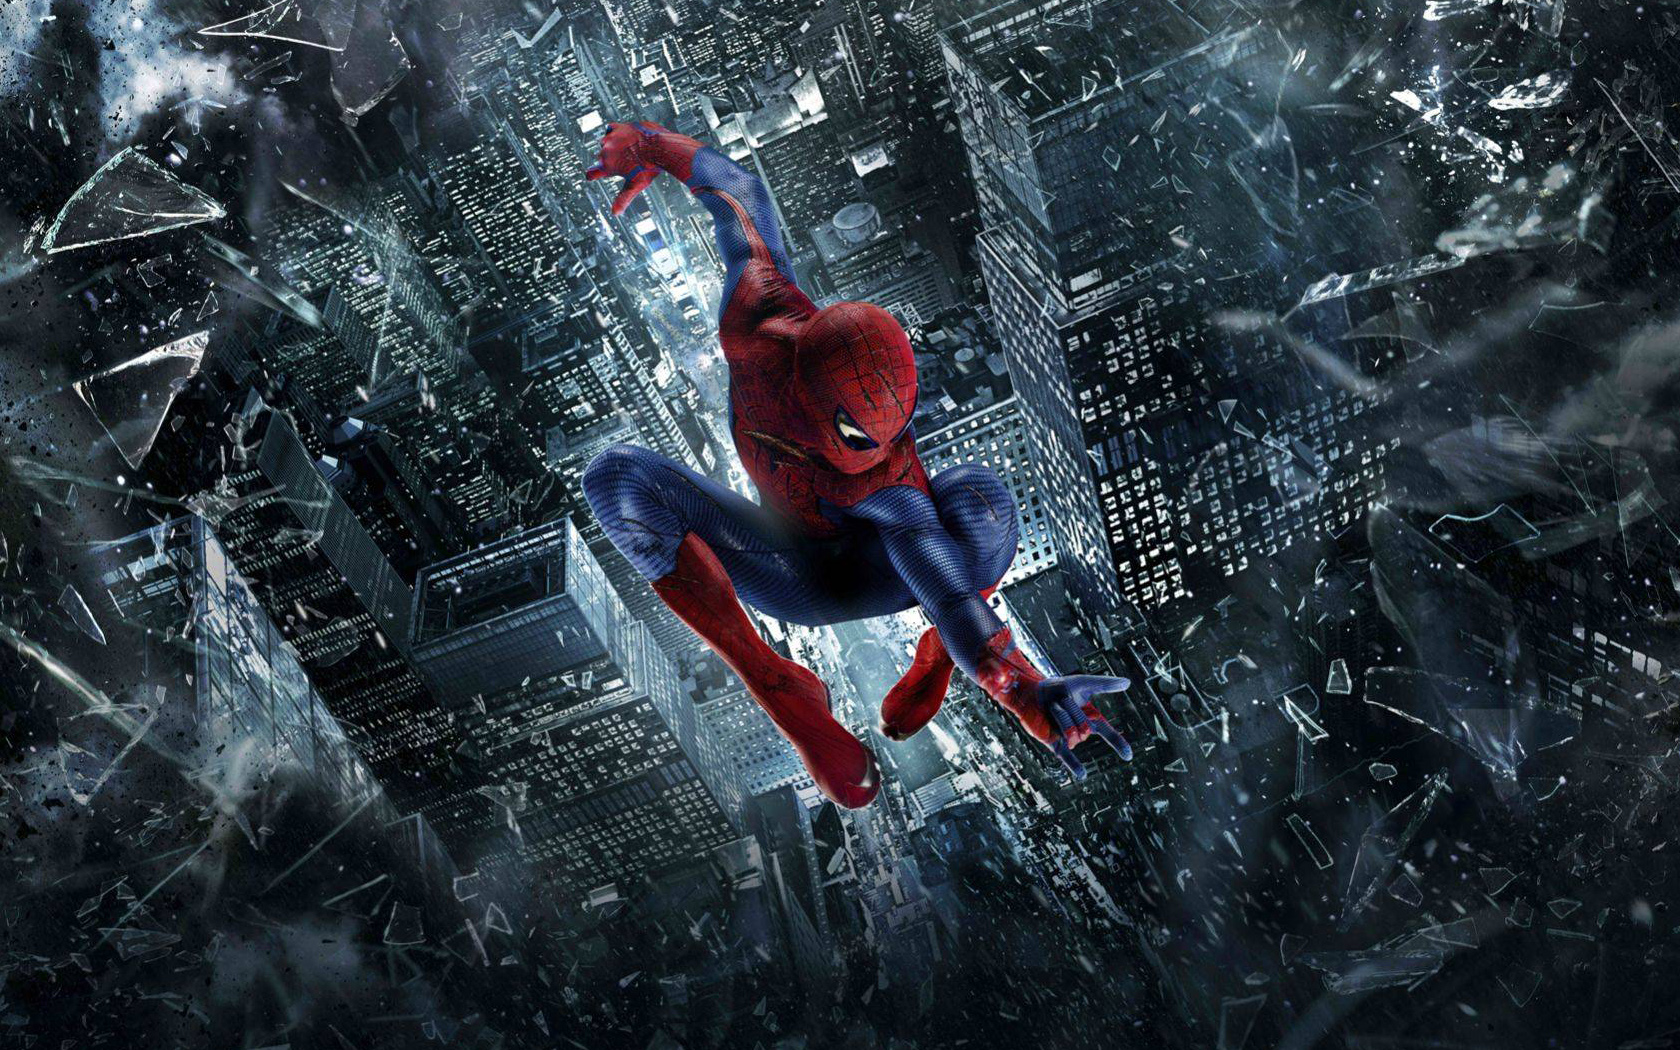 Spider man homecoming movie download free in mp4 1080p hd.